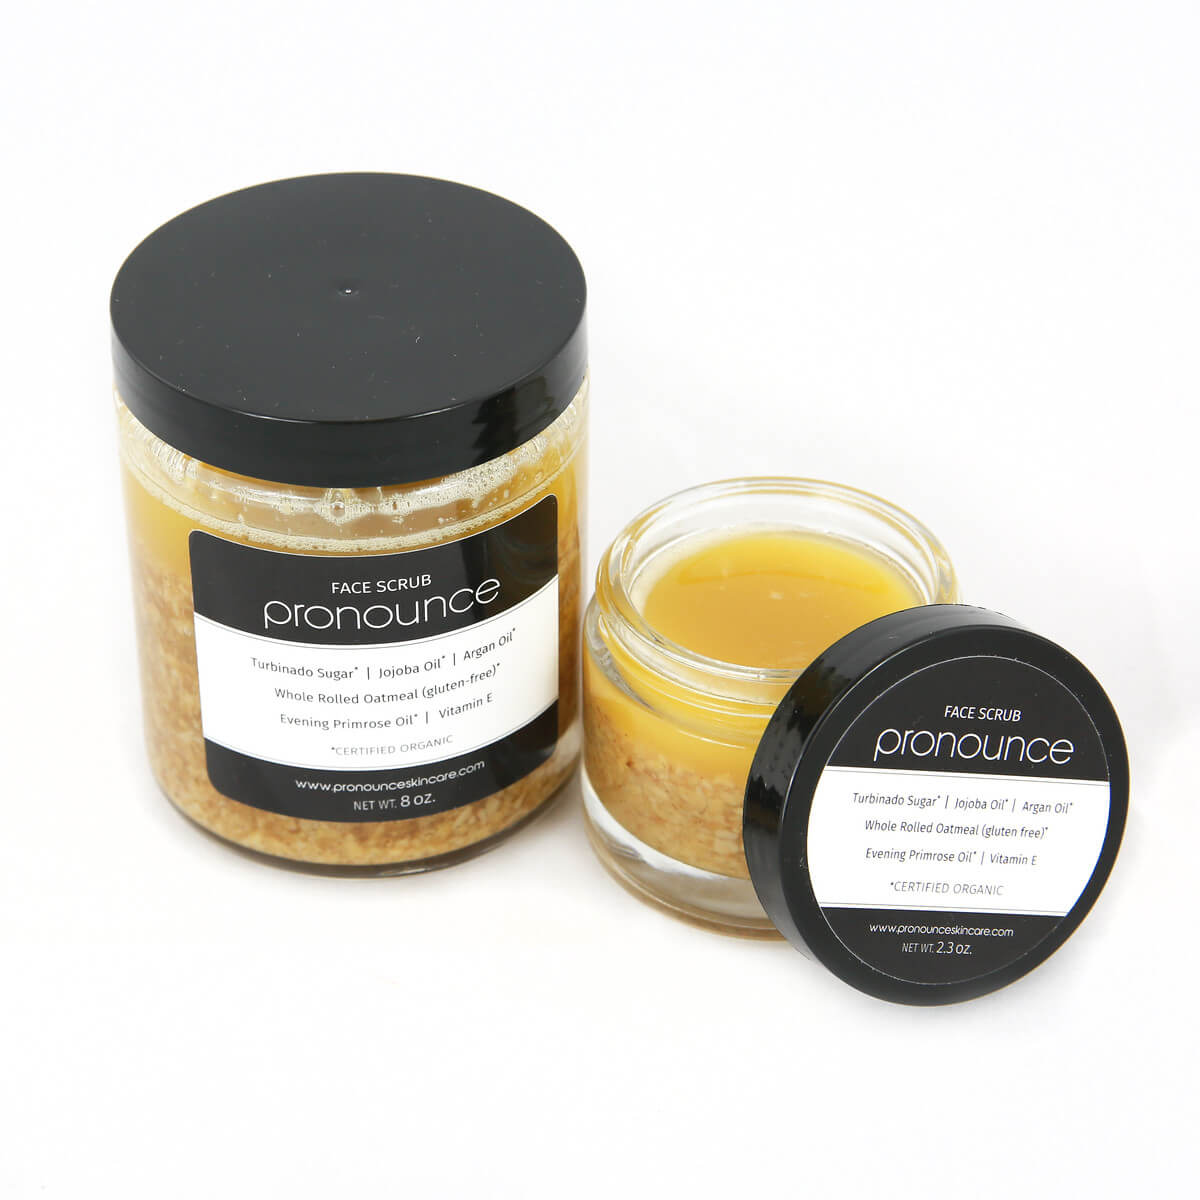 Face Scrub 2 Sizes Pronounce Skincare & Herbal Boutique